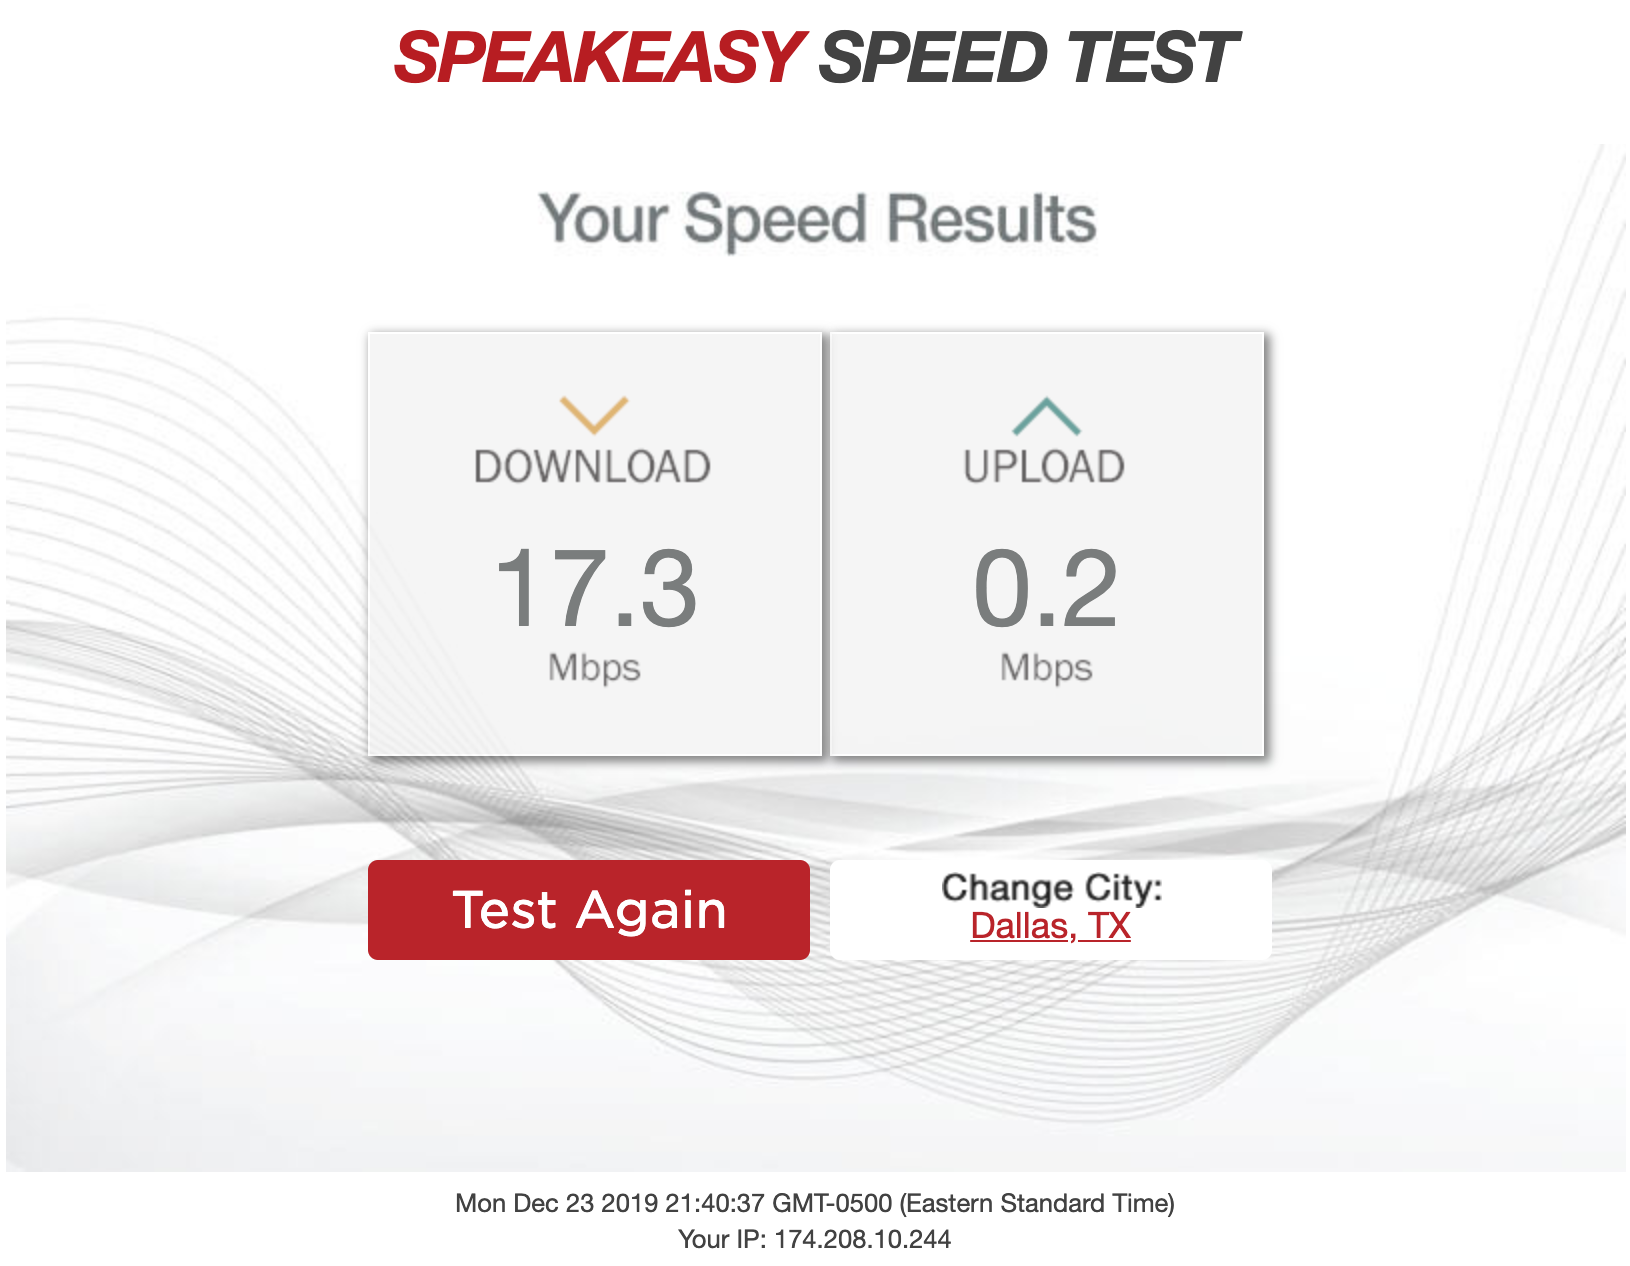 vzw.png